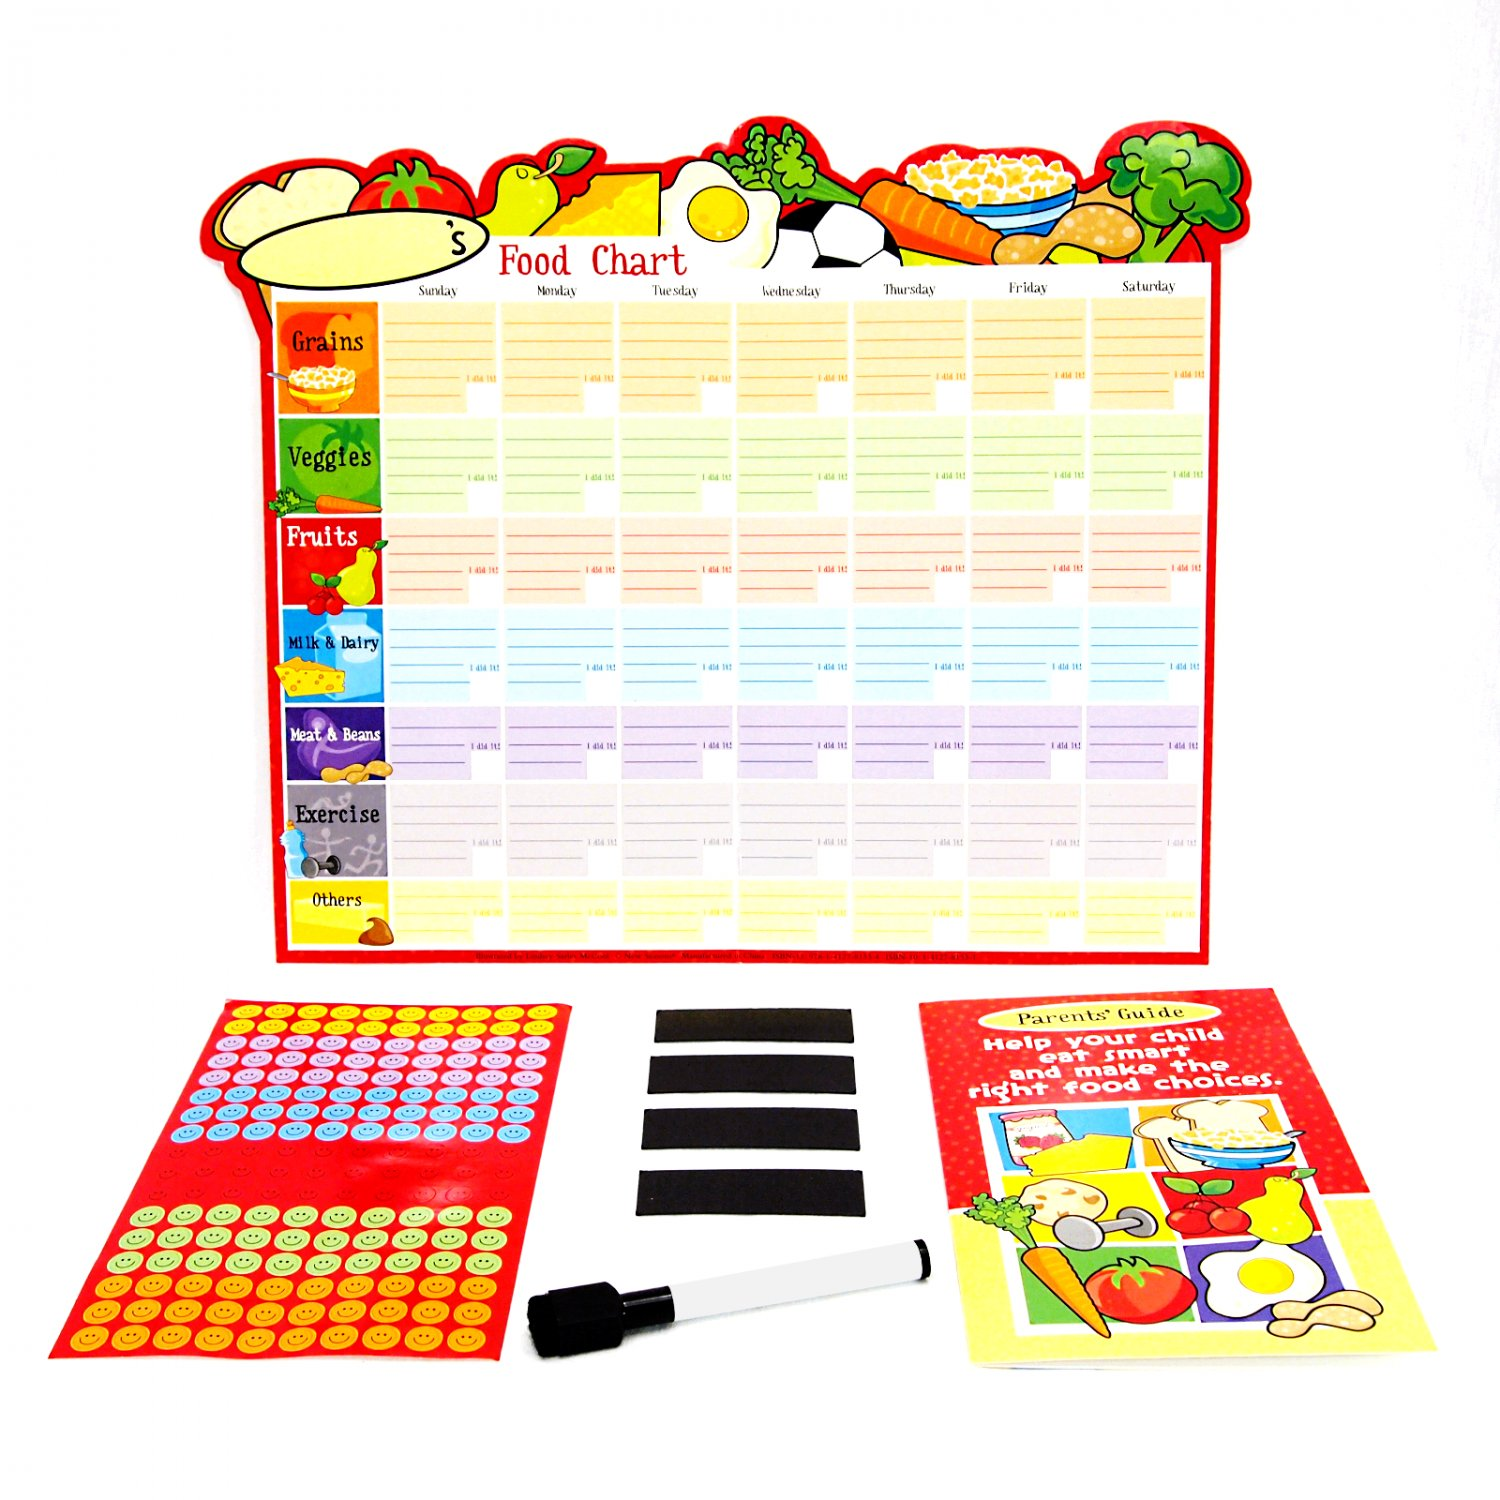 Kids Healthy Eating Reward Chart with Parents Guide, Dry Erase Pen, Smiley Stickers _272-01